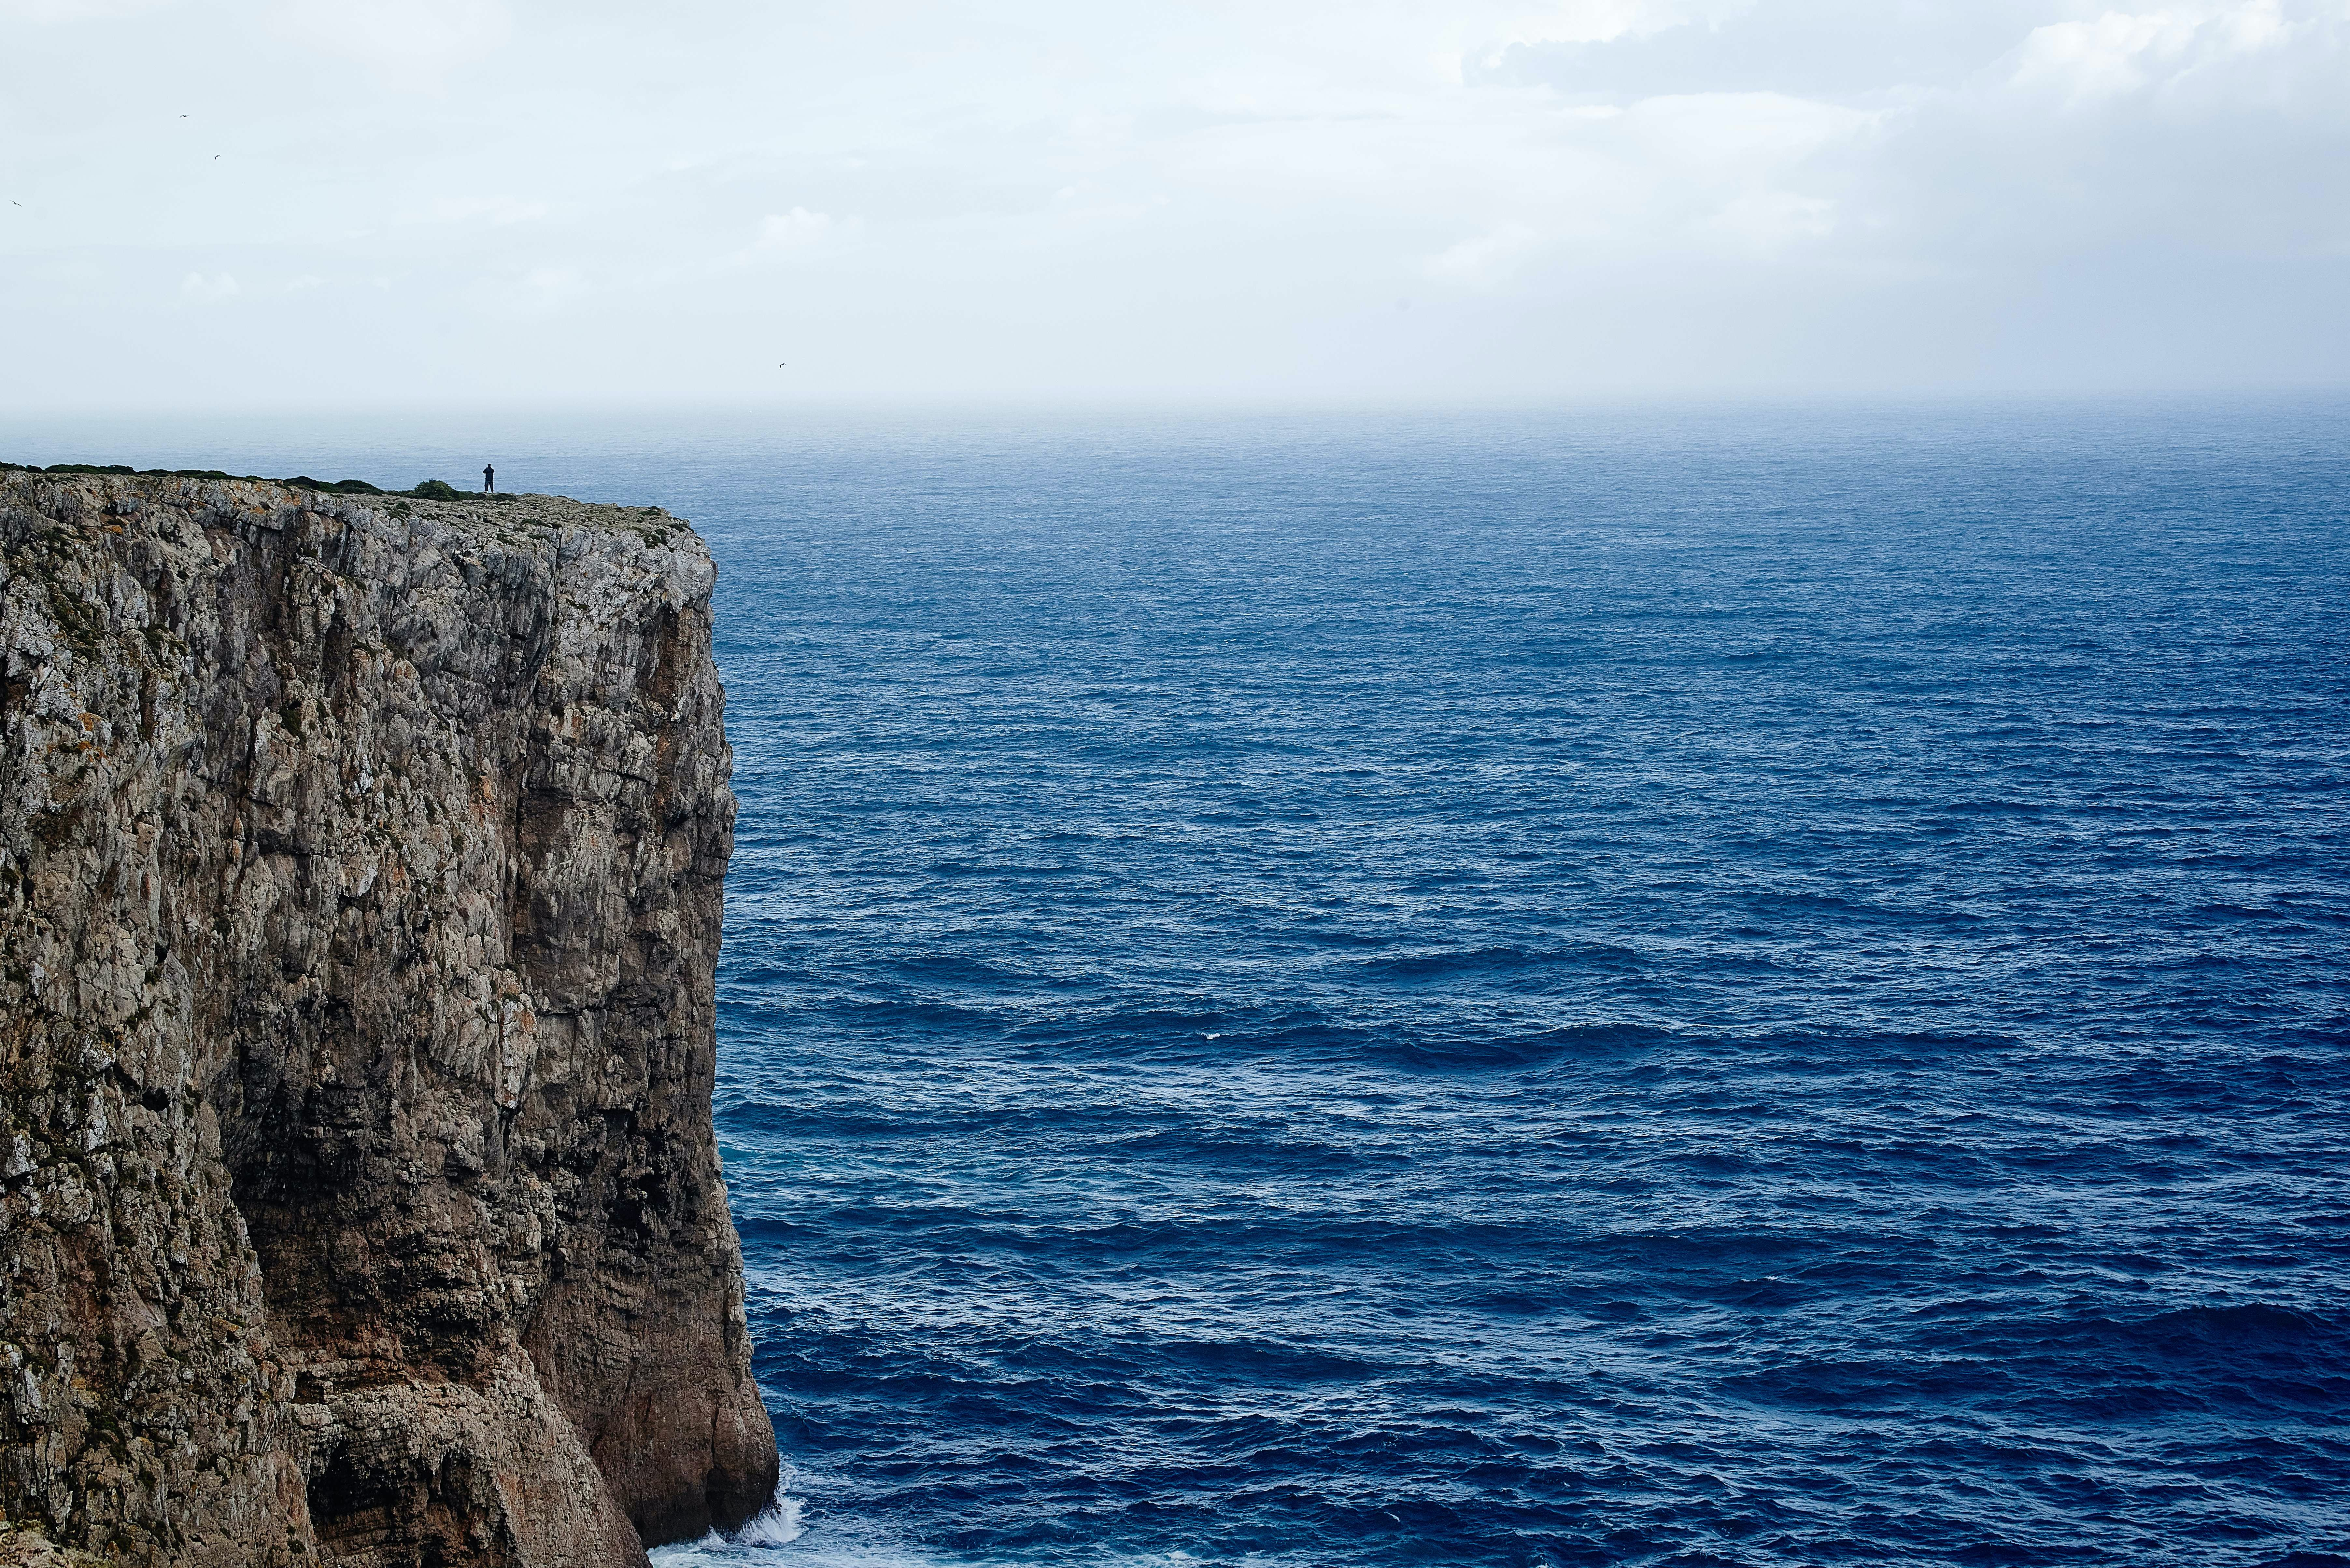 A rocky cliff overlooking a brilliant blue sea at Sagres